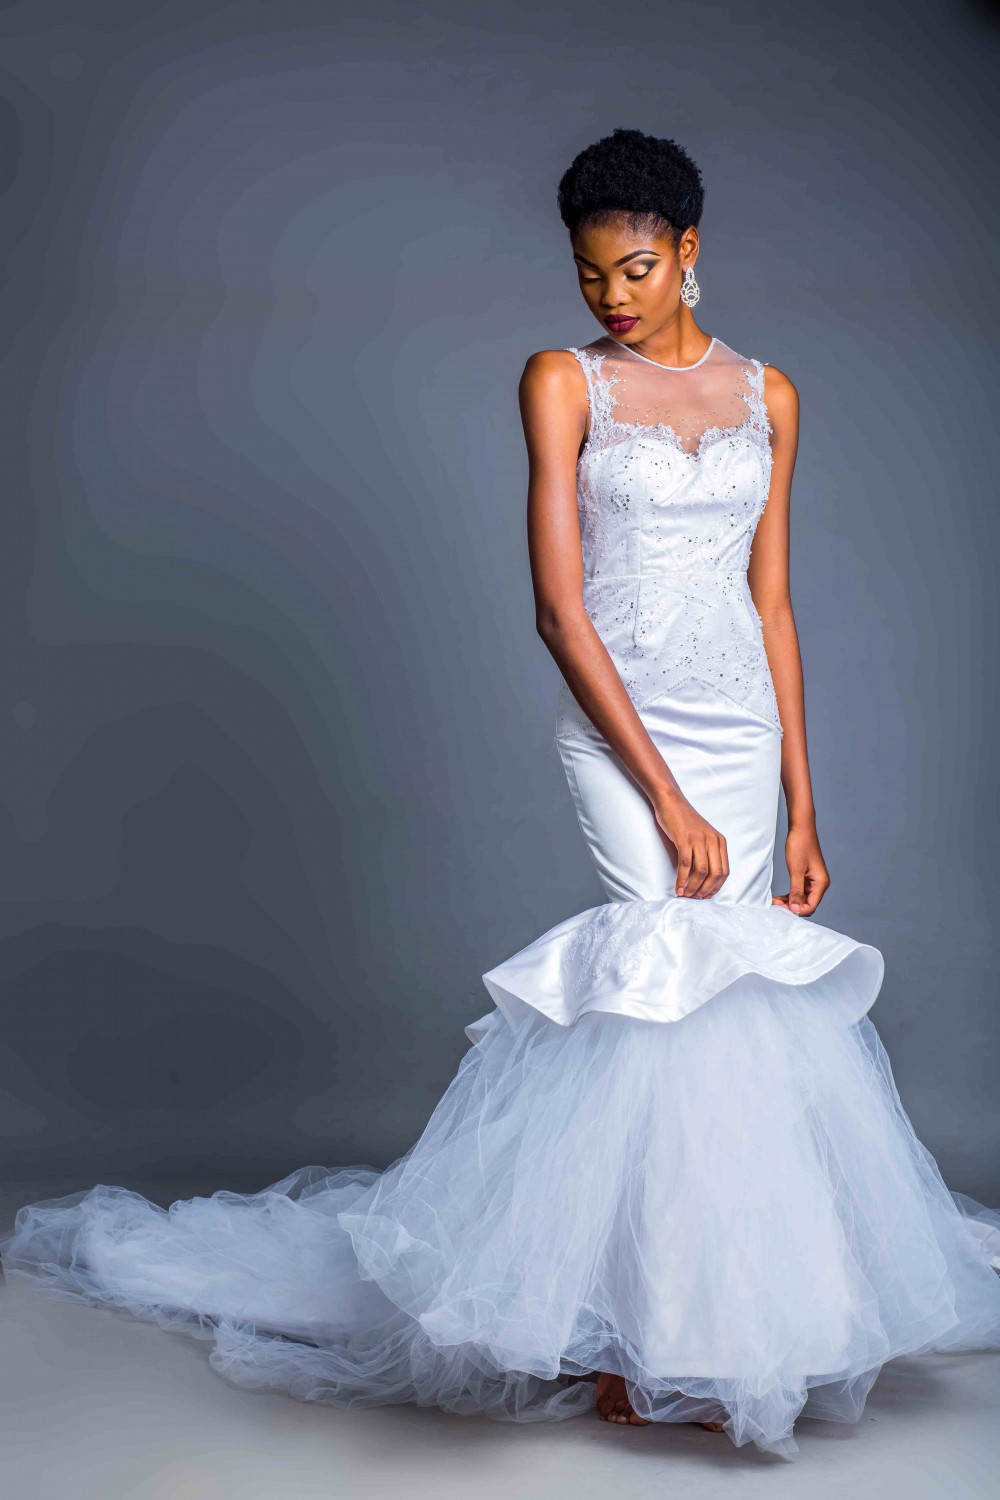 Hollerose Designs 2016 Collection Bridal 3